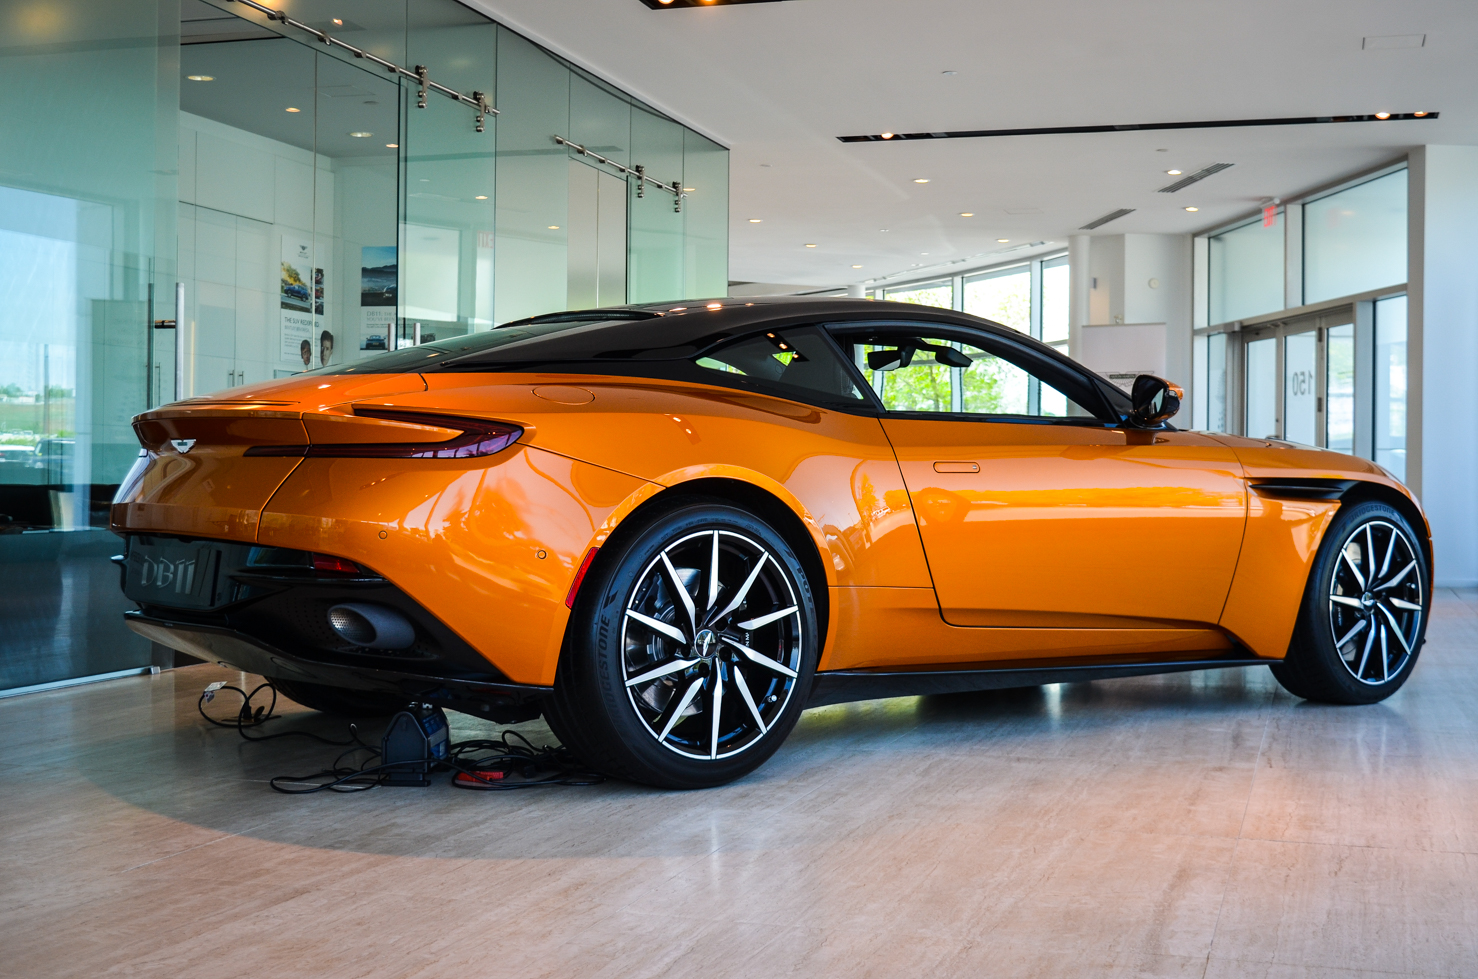 Aston Martin Db11 Most Beautiful Auto Ask Andy Forums